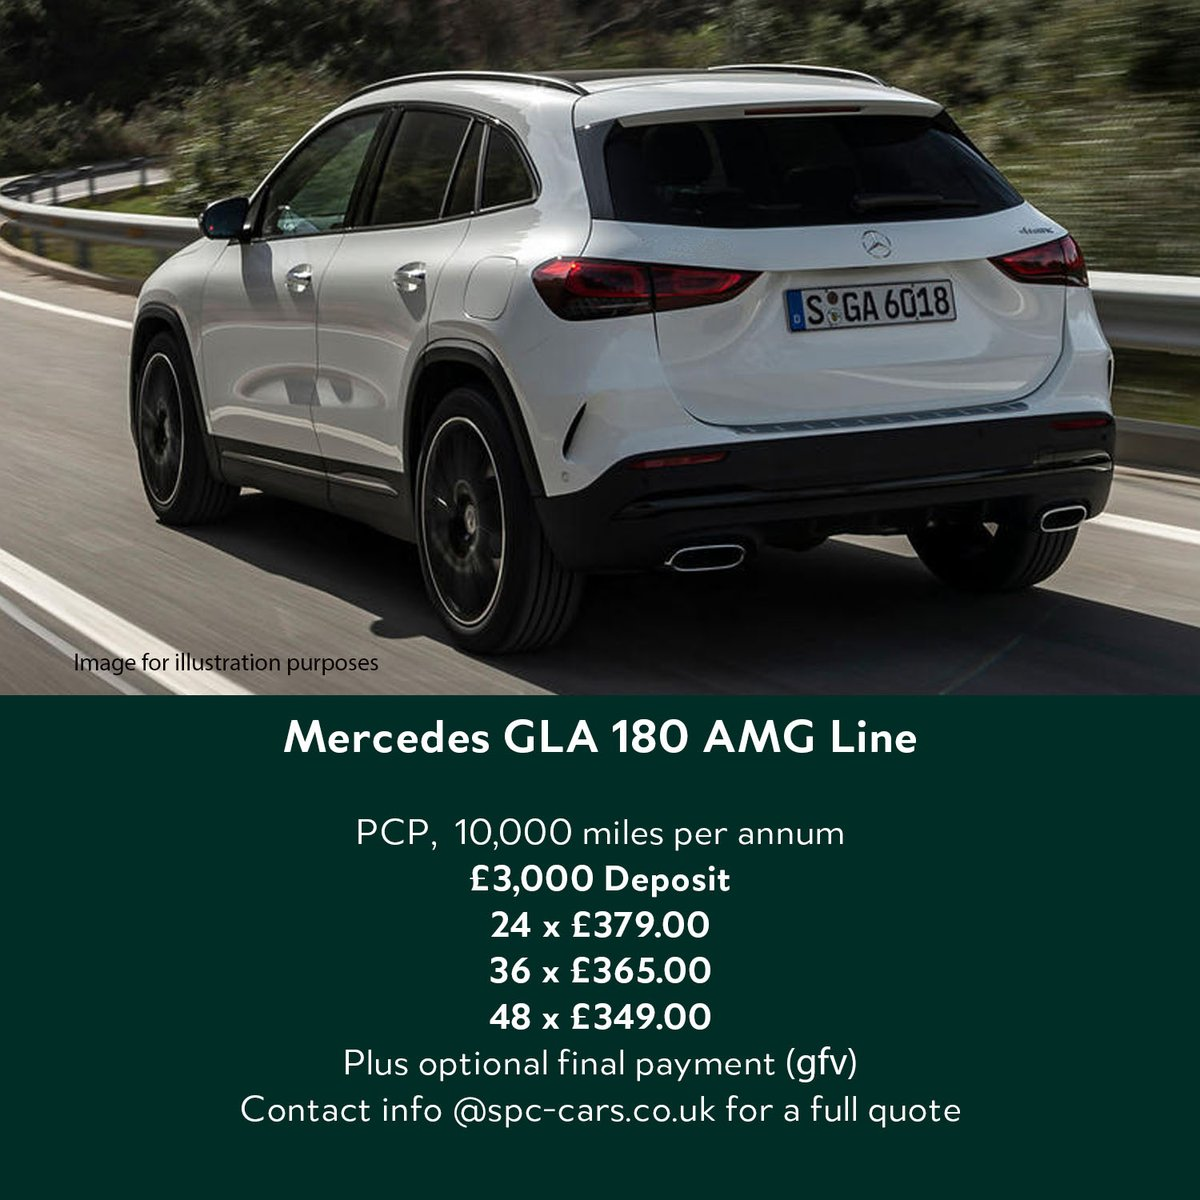 The GLA has a great road presence  Contact info@spc-cars.co.uk to discuss and secure yours    Also visit https://t.co/Si9BqLwxKM to see all the great vehicles we offer  #mercedes #gla #amg #suv #newcardeals #pfa #efl #spccars https://t.co/WjIKqe7SLe